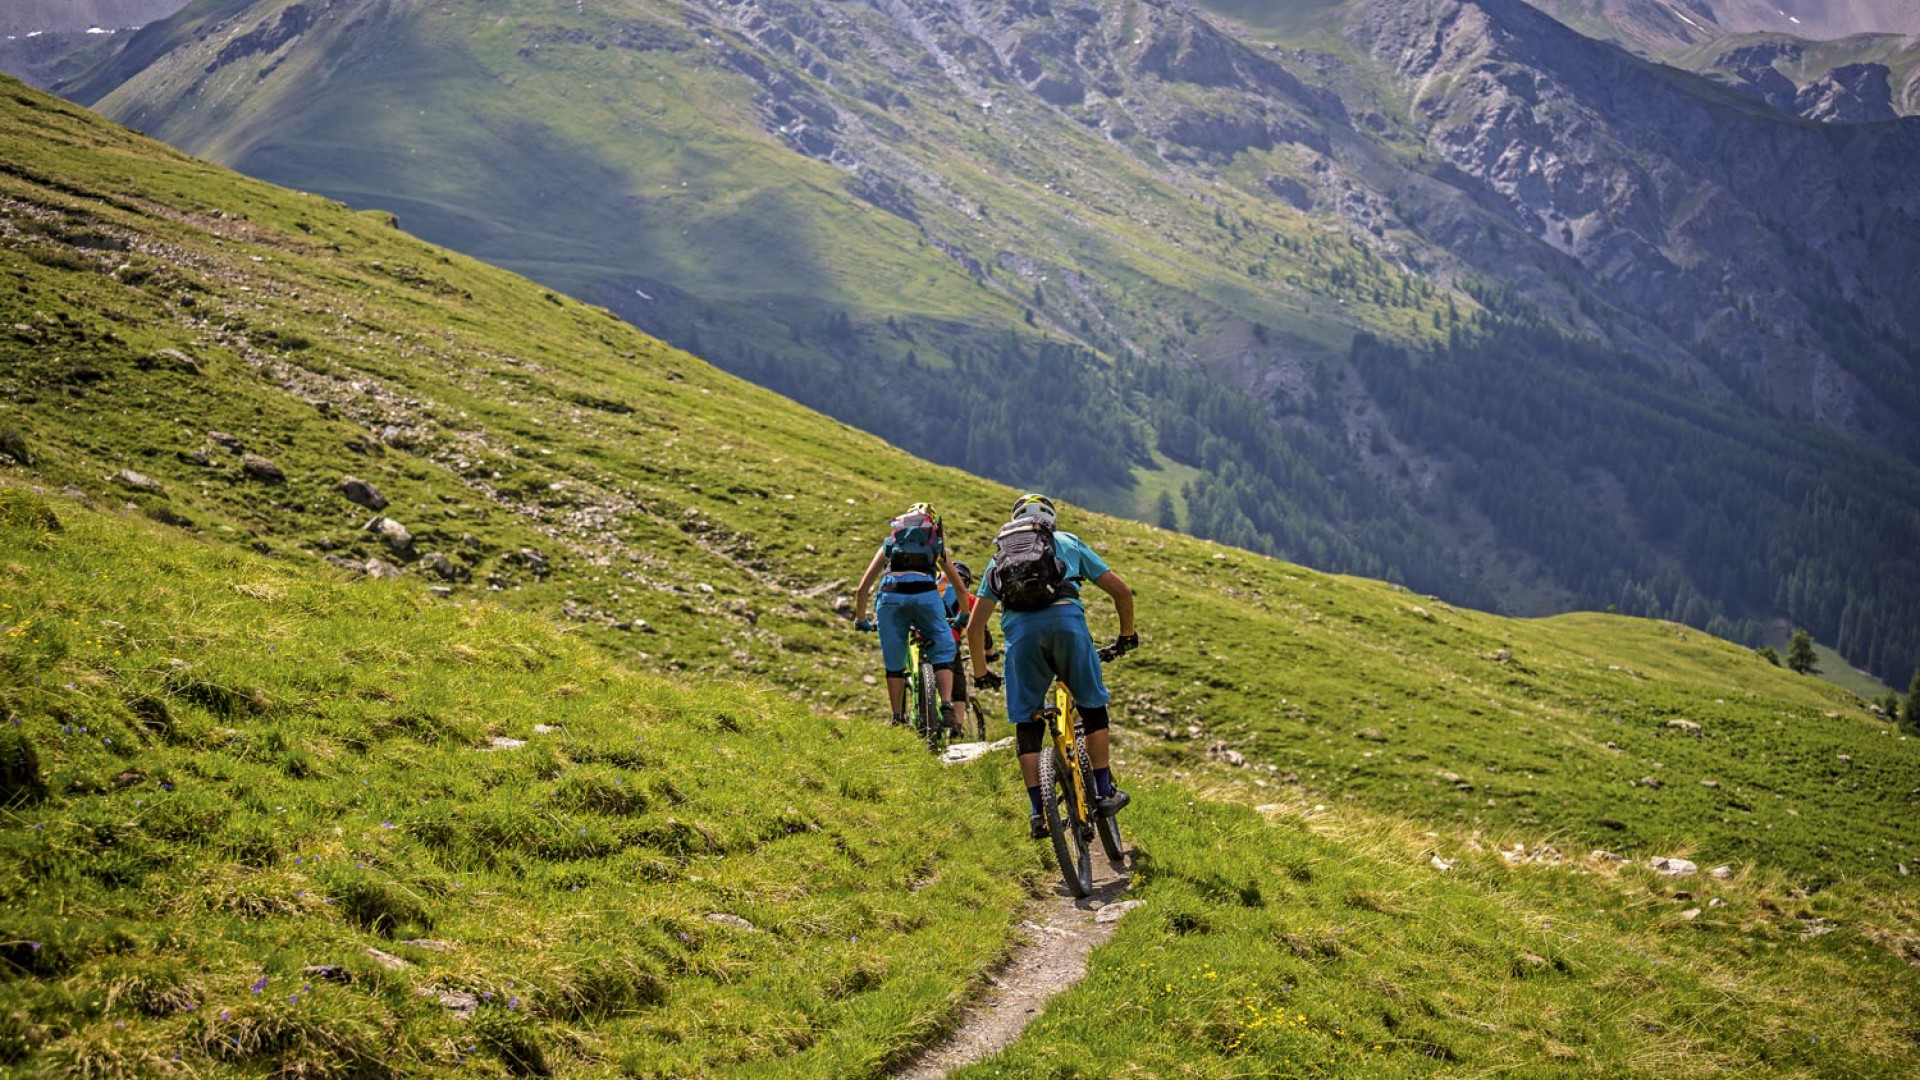 Riding a downhill section of the GR58 route in the southern French Alps